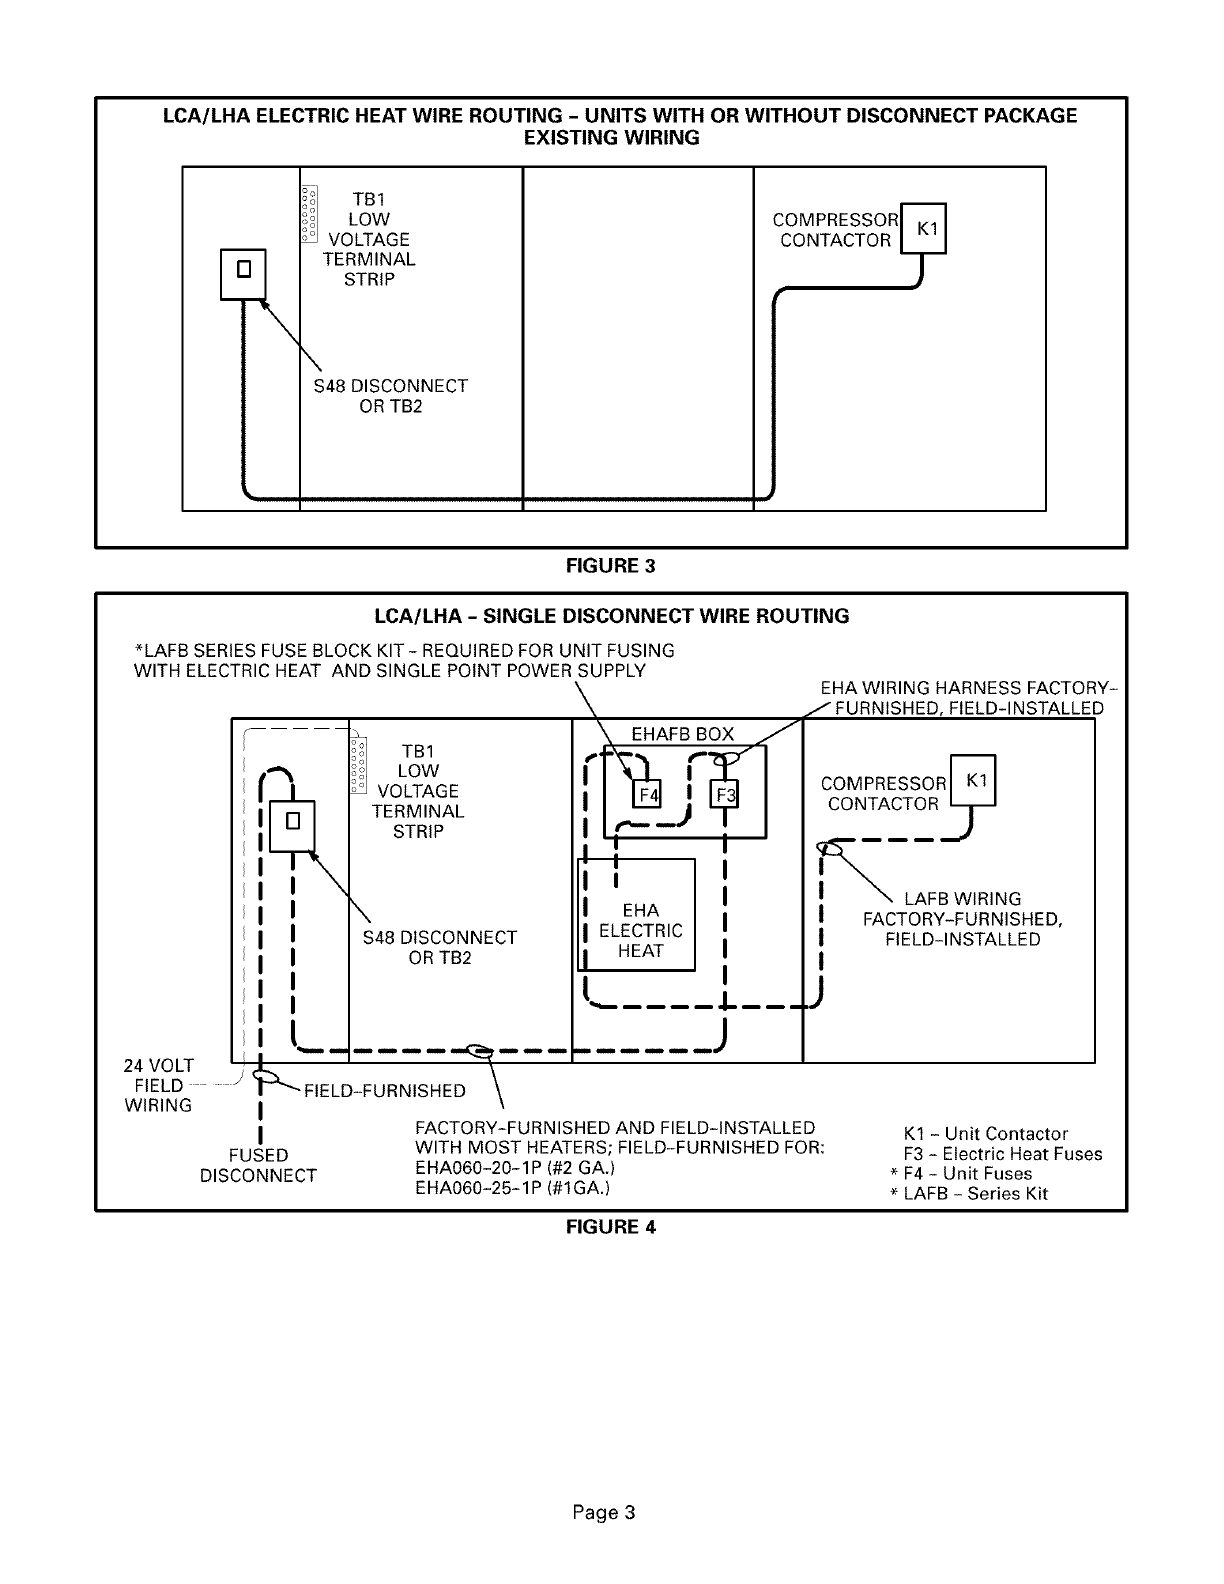 hight resolution of lca lha electric heat wire routing units with or without disconnect package